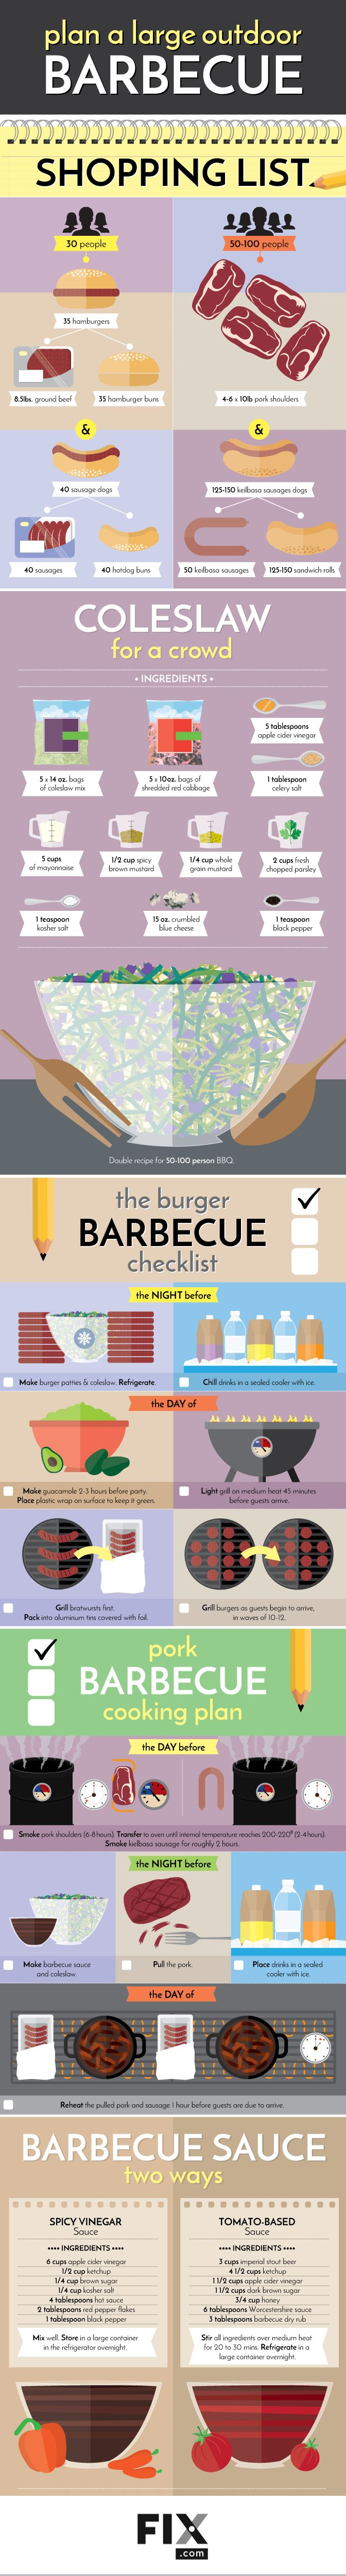 Plan a Large Outdoor Cookout - Cooking For A Crowd